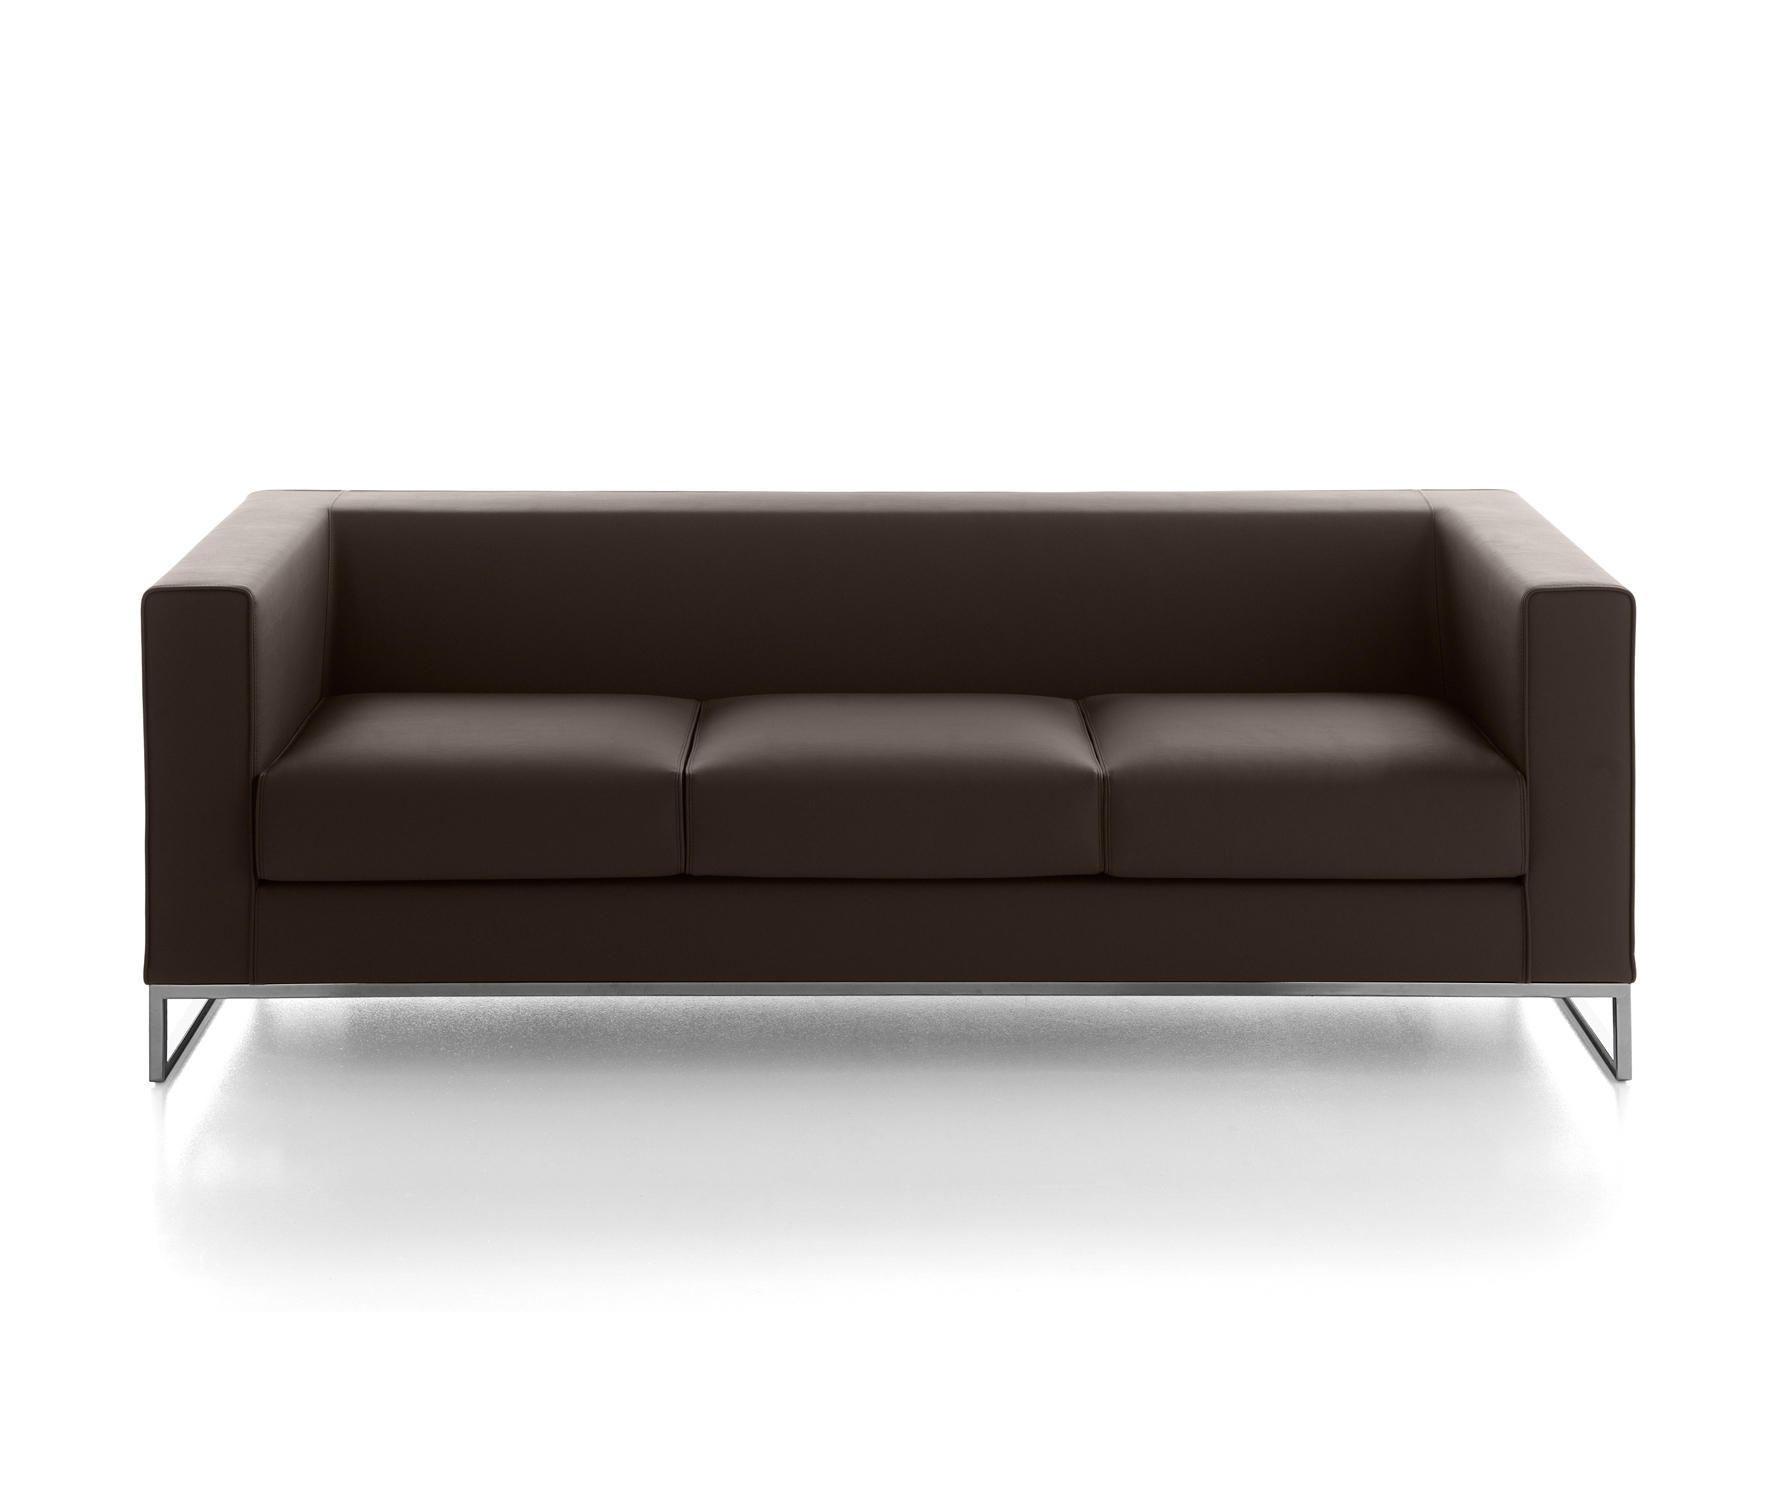 Klasse loungesofas von kastel architonic for Urban sofa deutschland